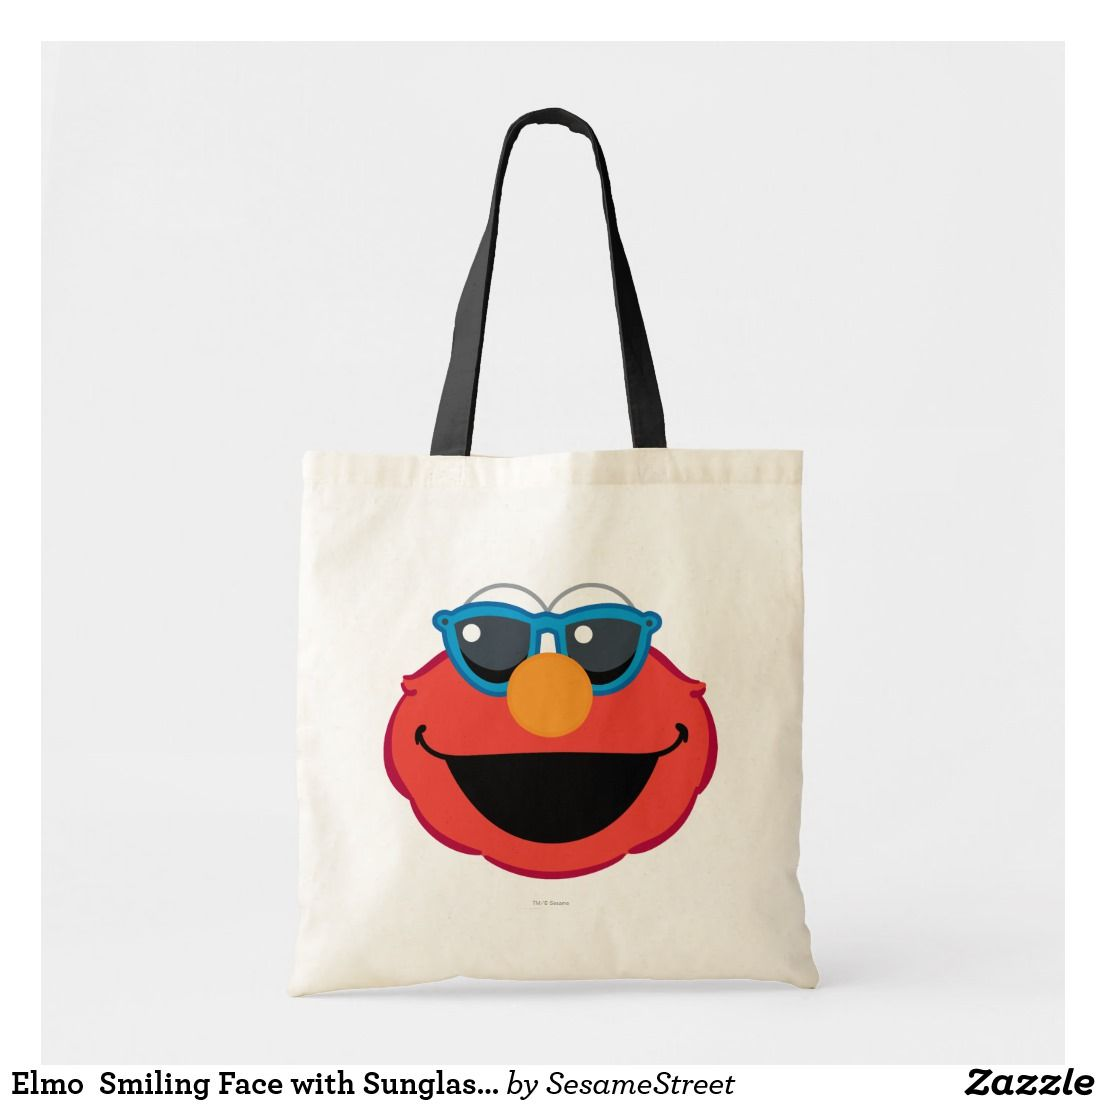 Elmo Smiling Face With Sungl Tote Bag Zazzle